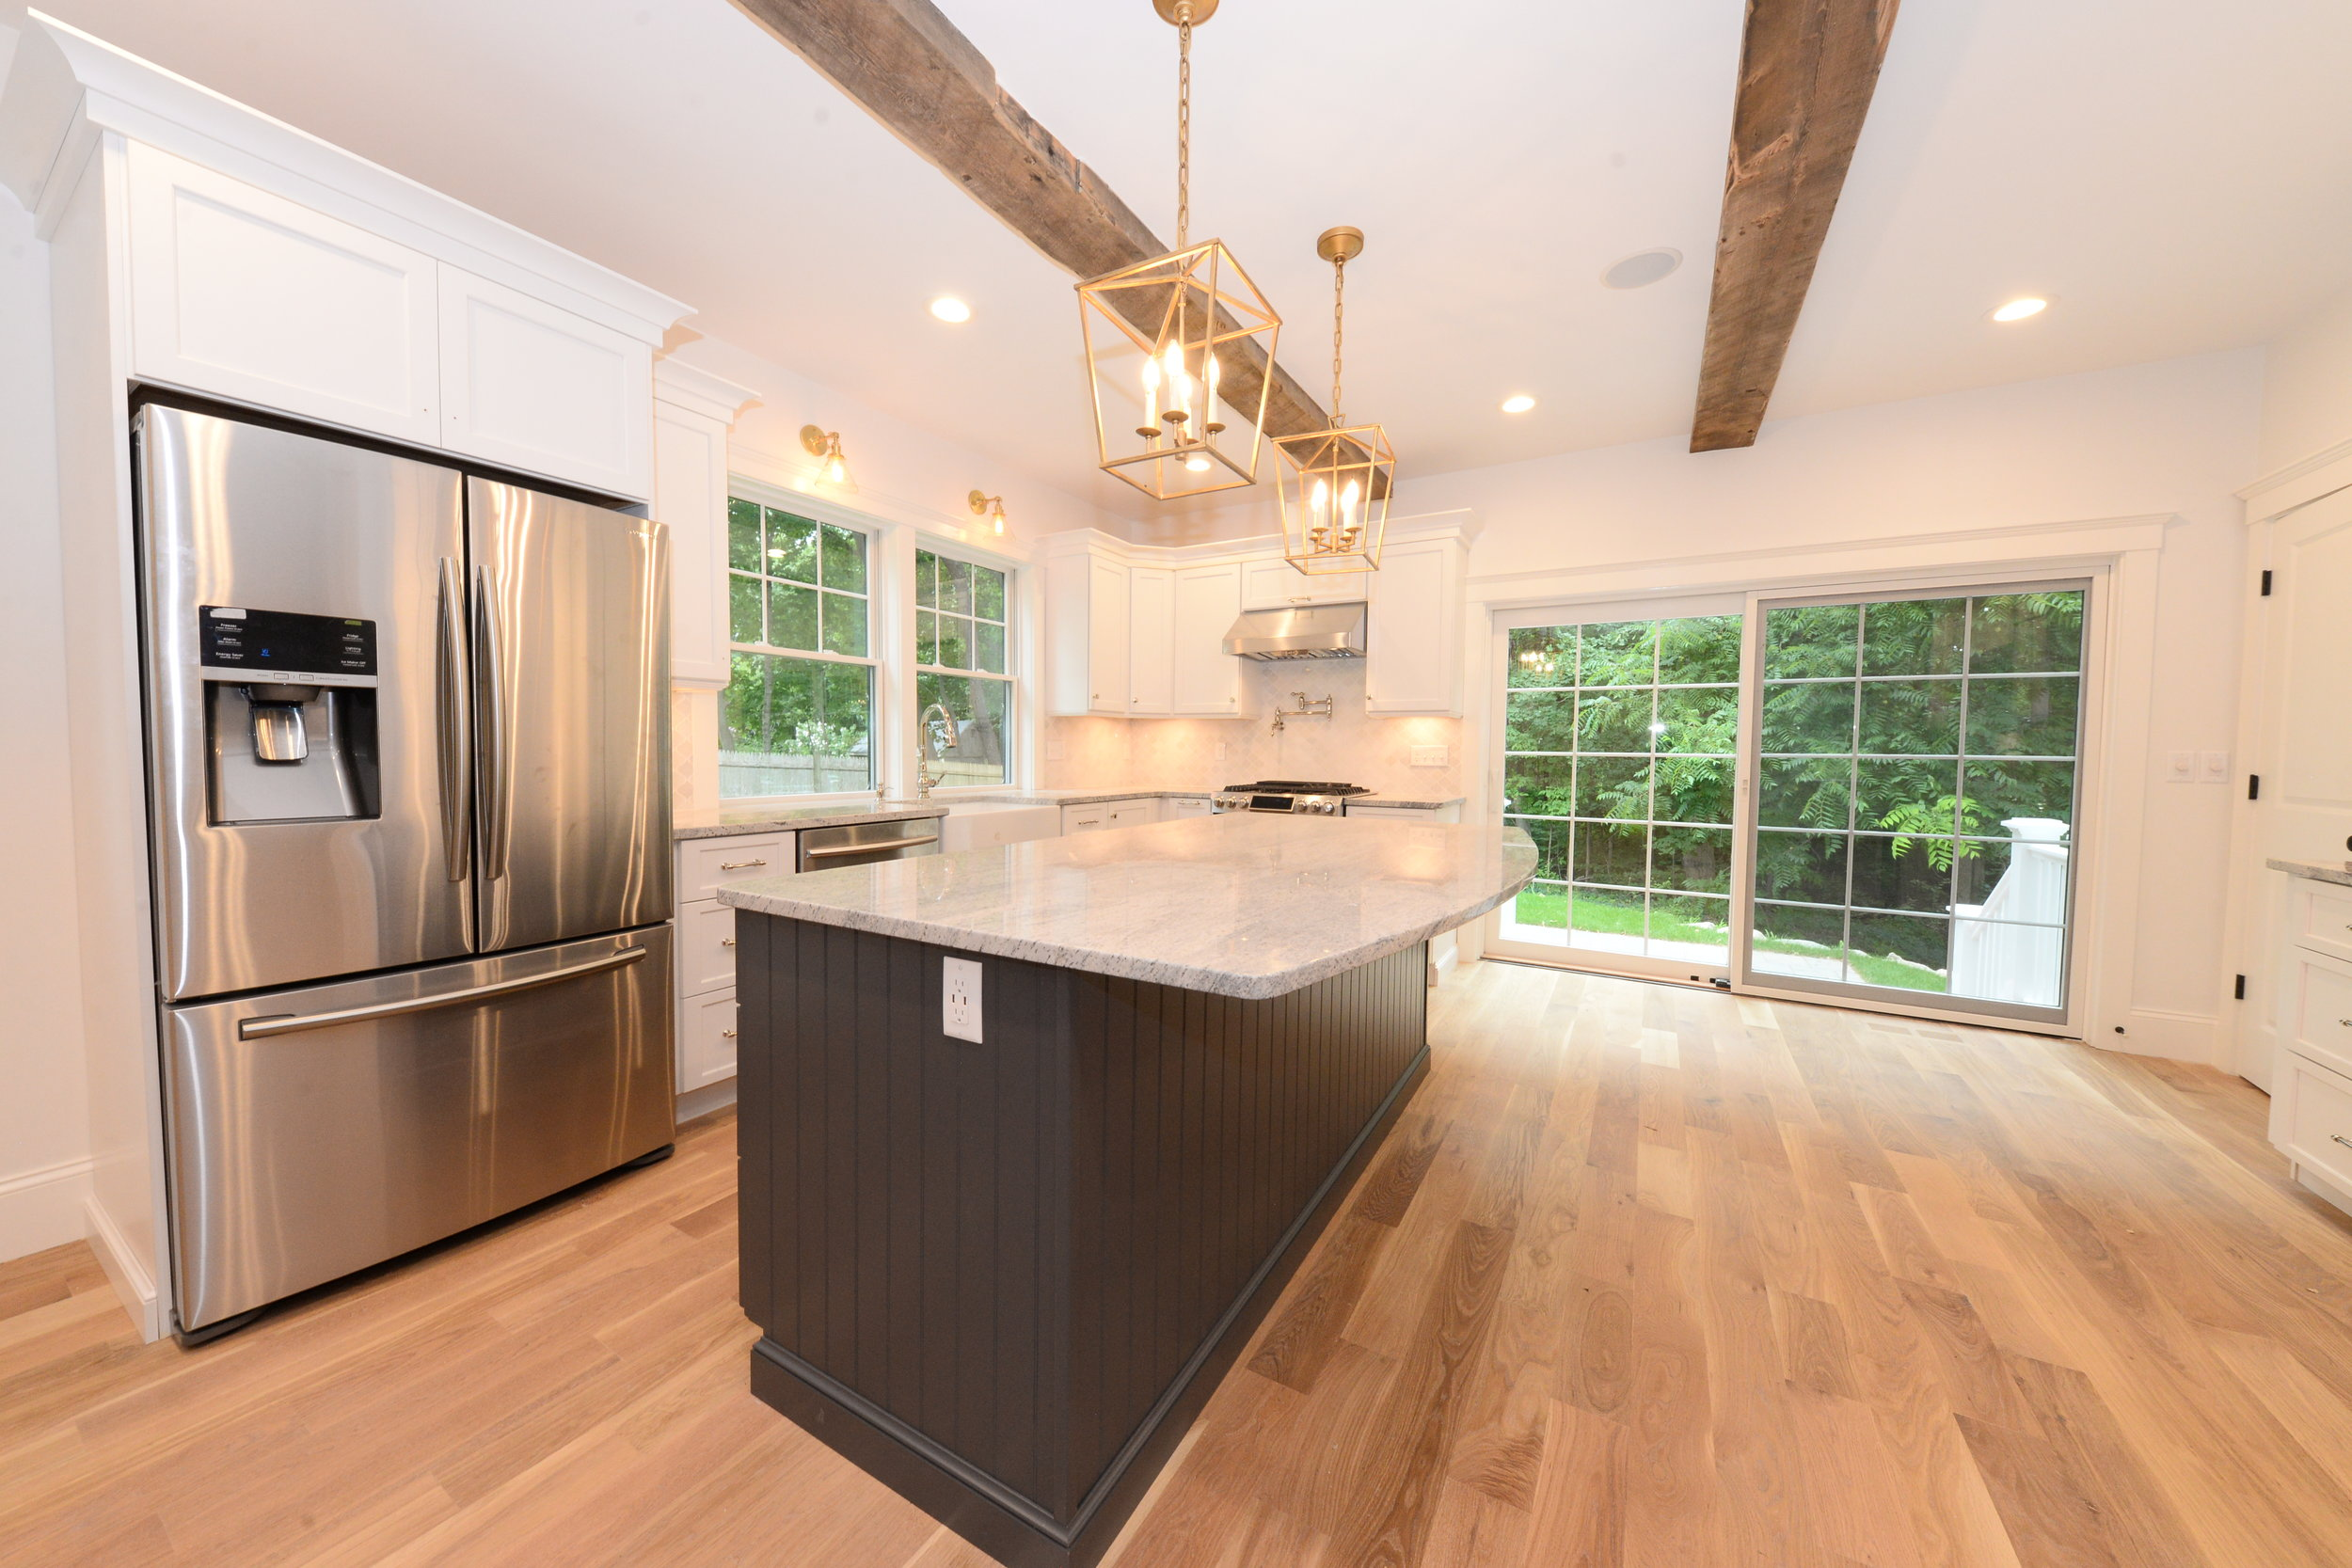 Hersey's completed kitchen.